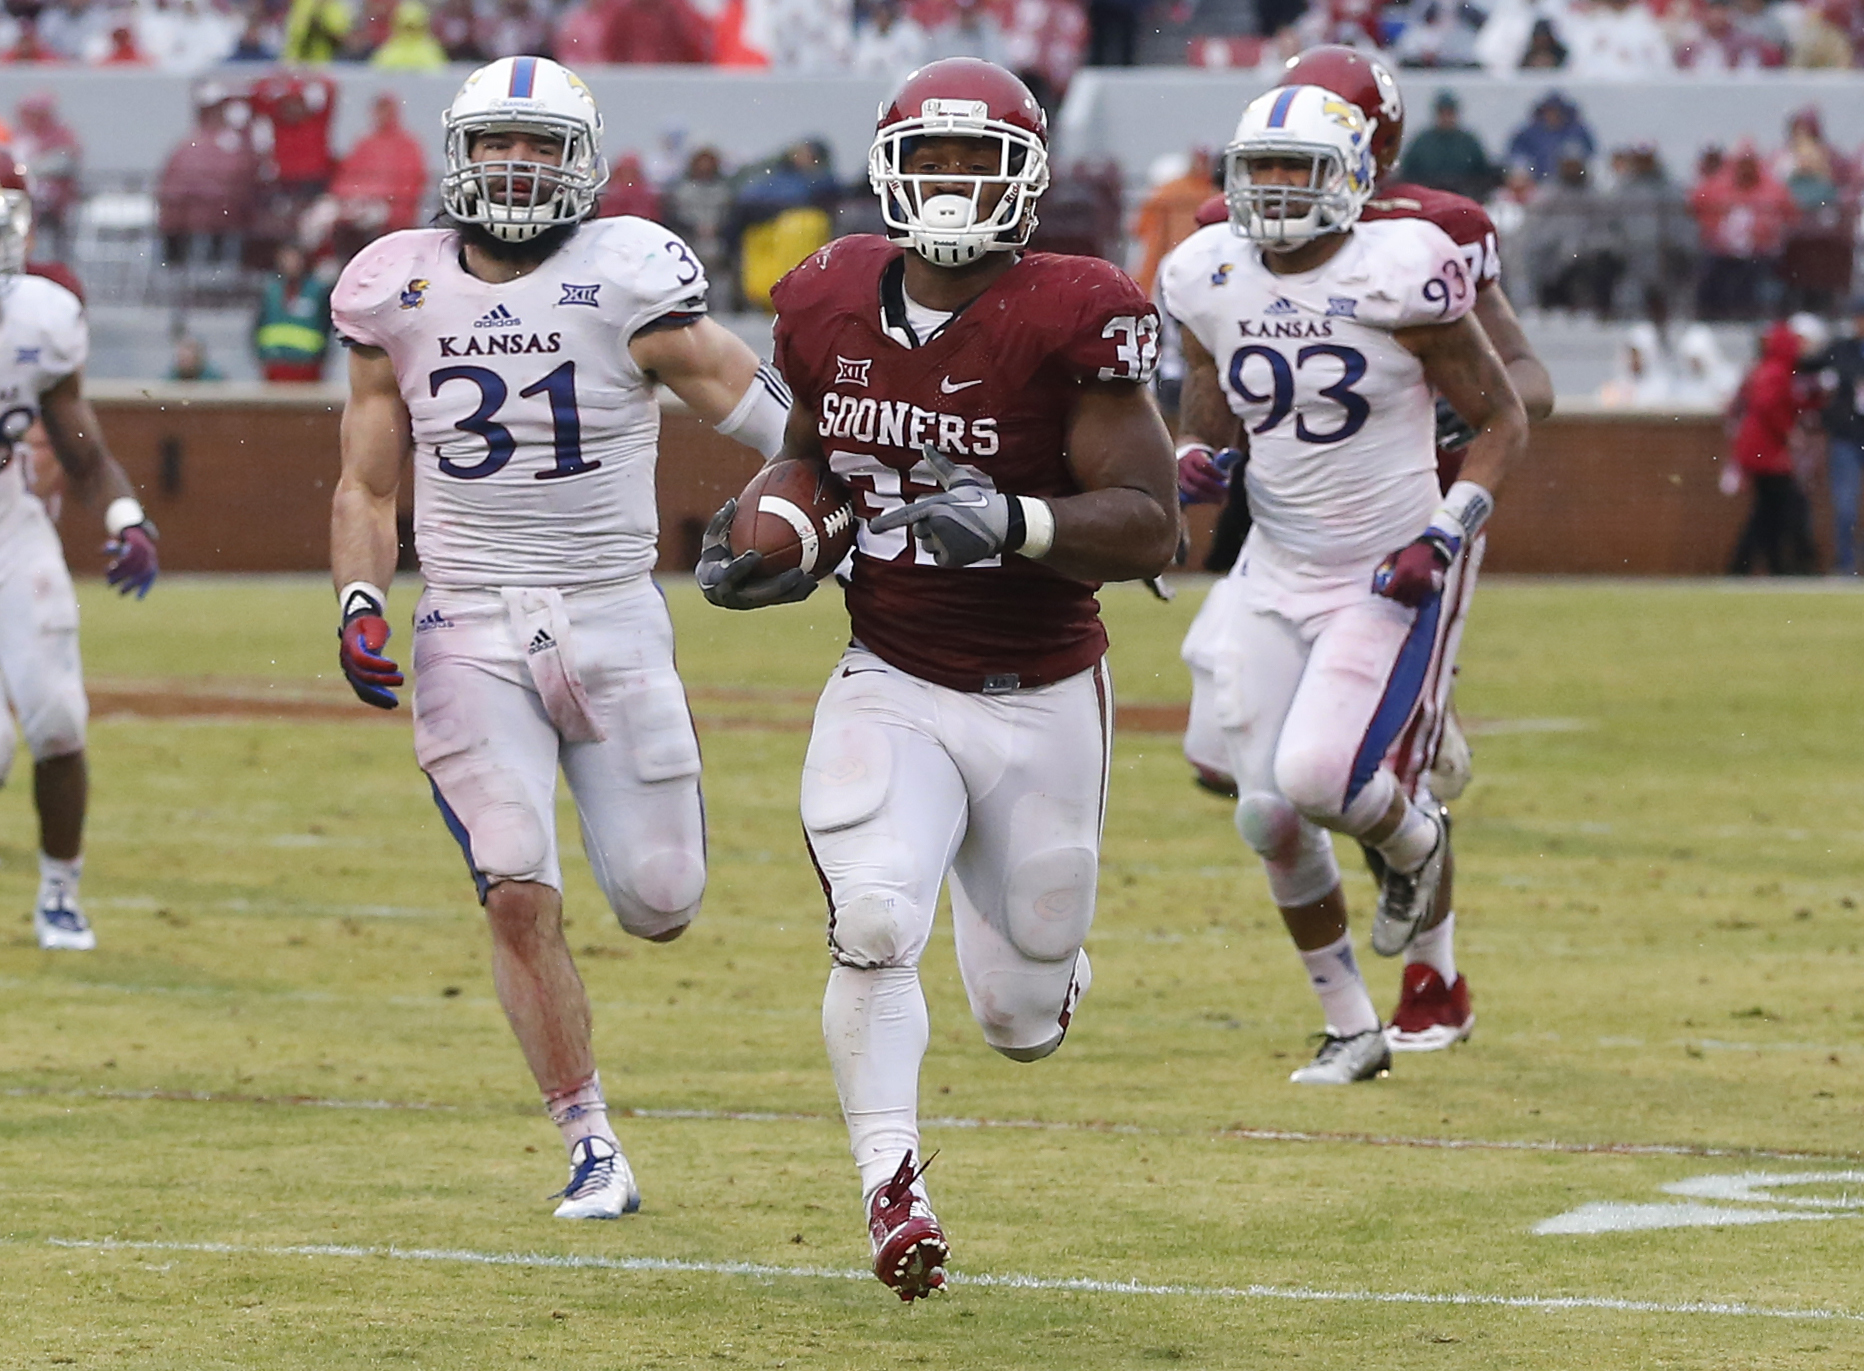 On Nov. 22, 2014, Perine broke Melvin Gordon's week-old record in a 44-7 win over Kansas in rainy Norman, Okla. Perine had five touchdown runs in the win. (AP Photo/Sue Ogrocki)